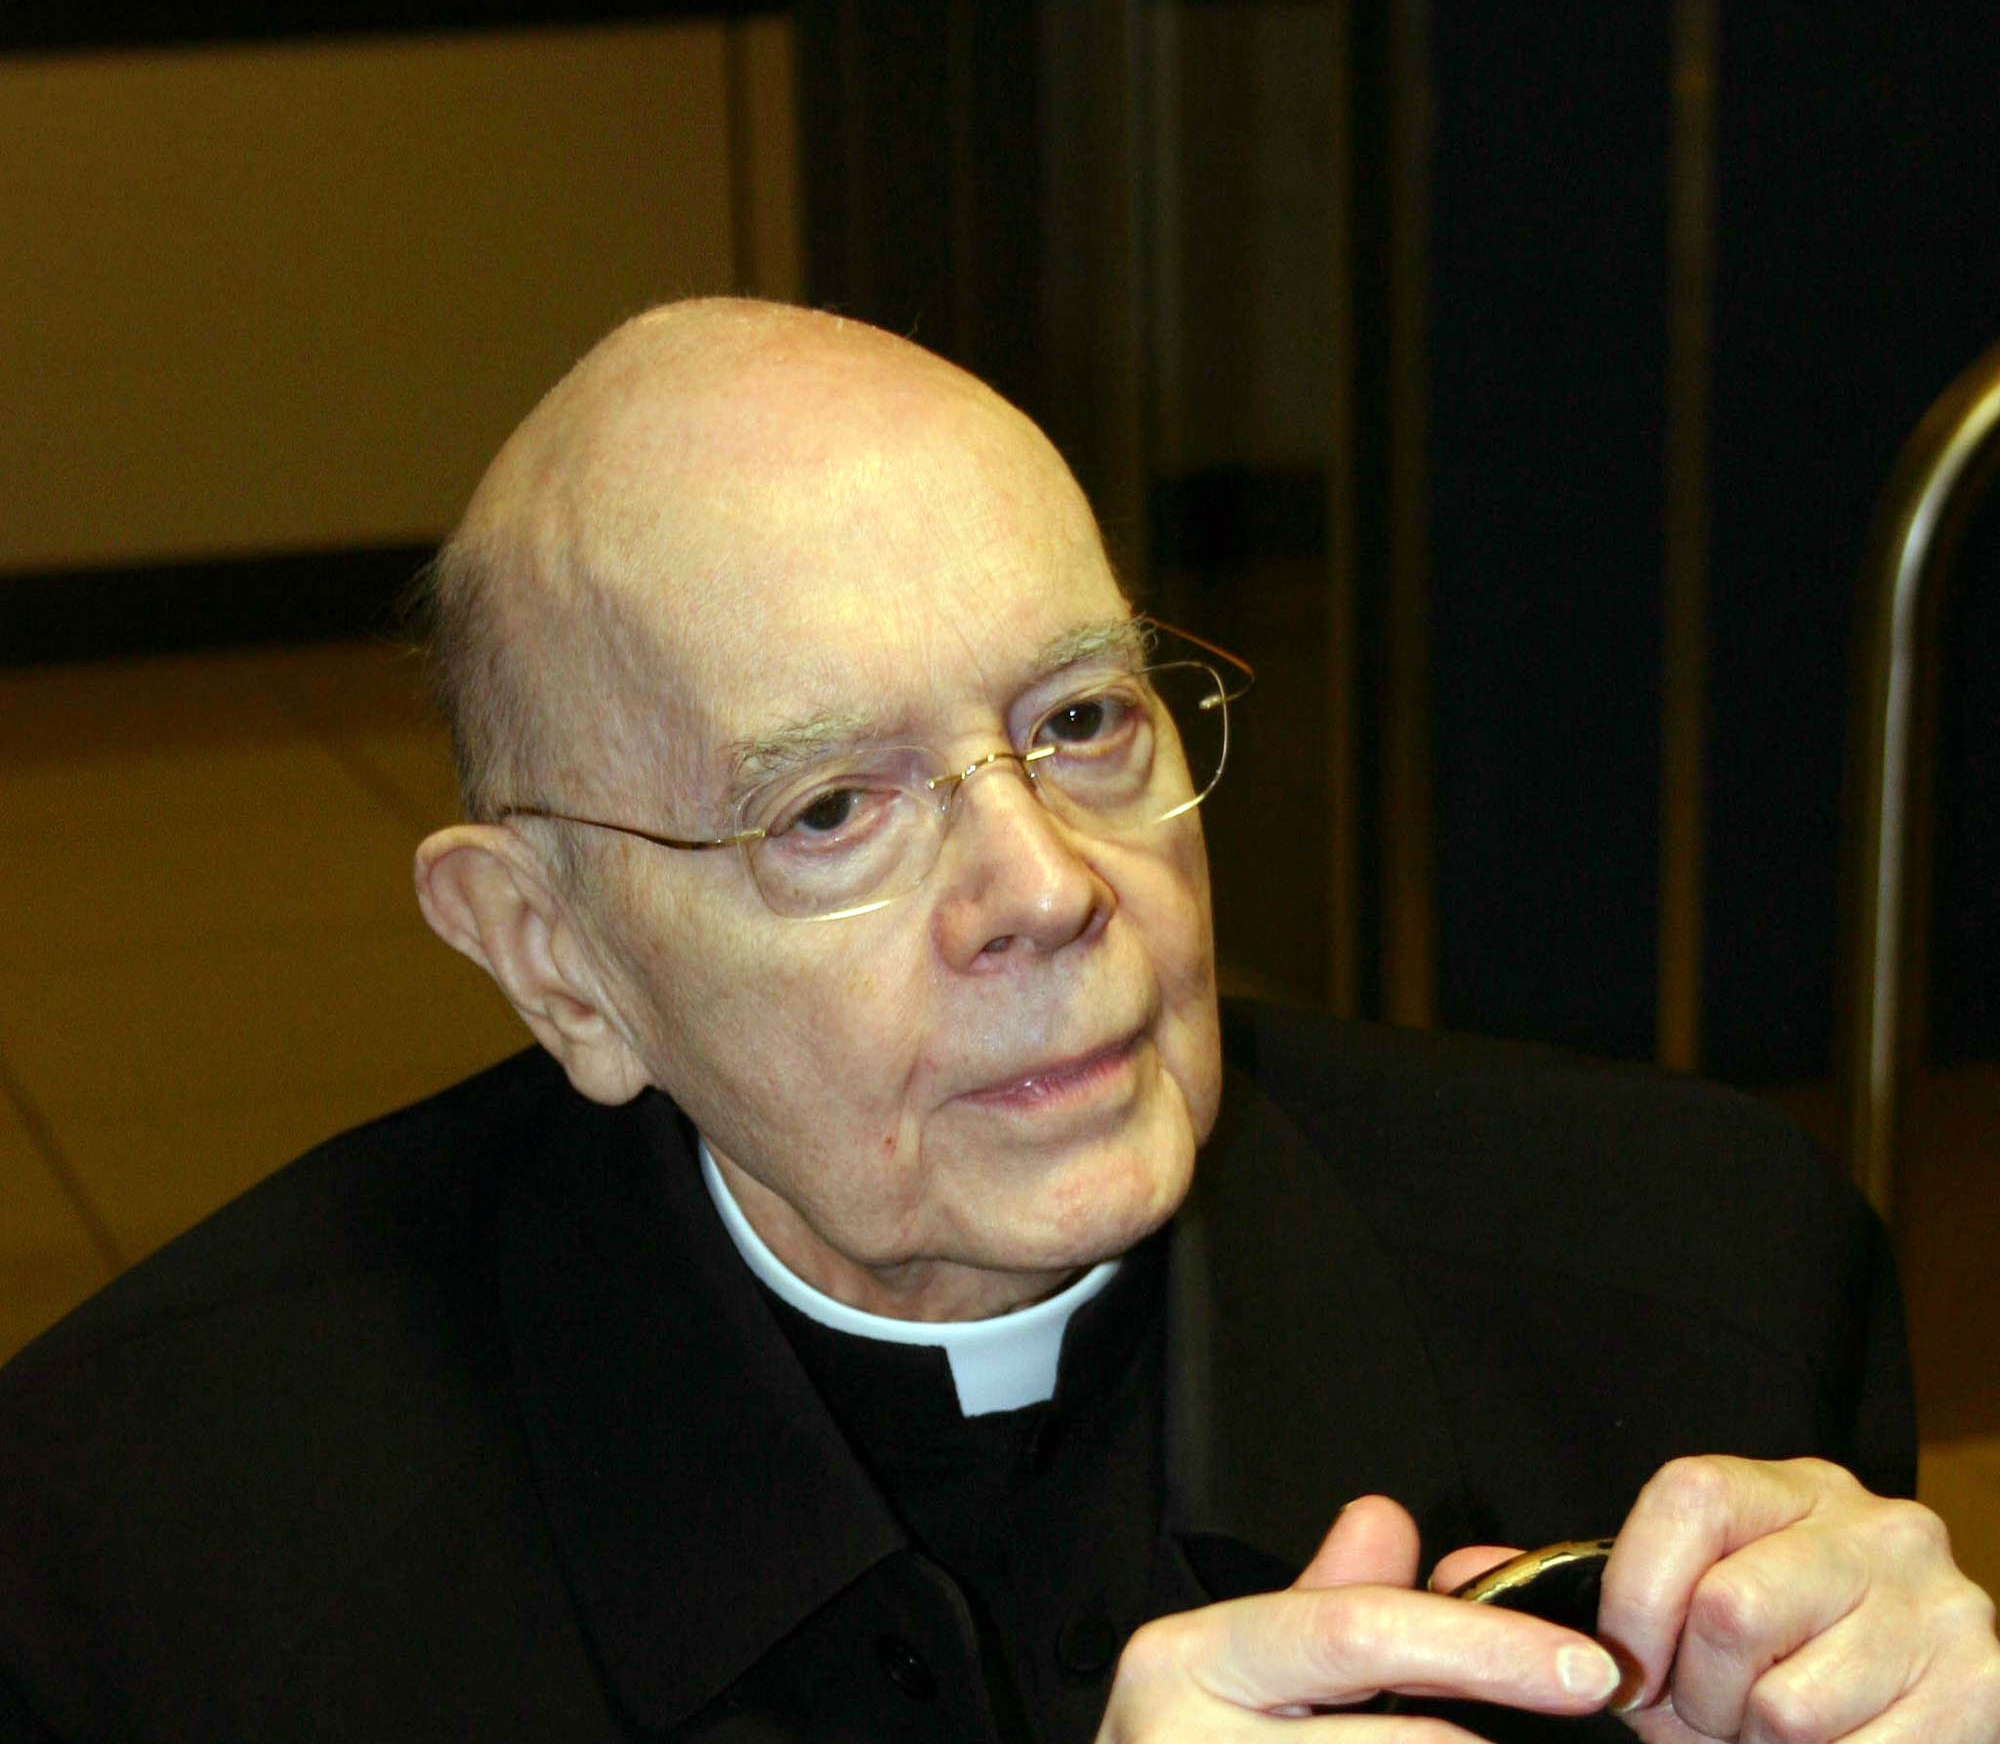 Cardinal William Wakefield Baum at his arrival at Fiumicino Airport